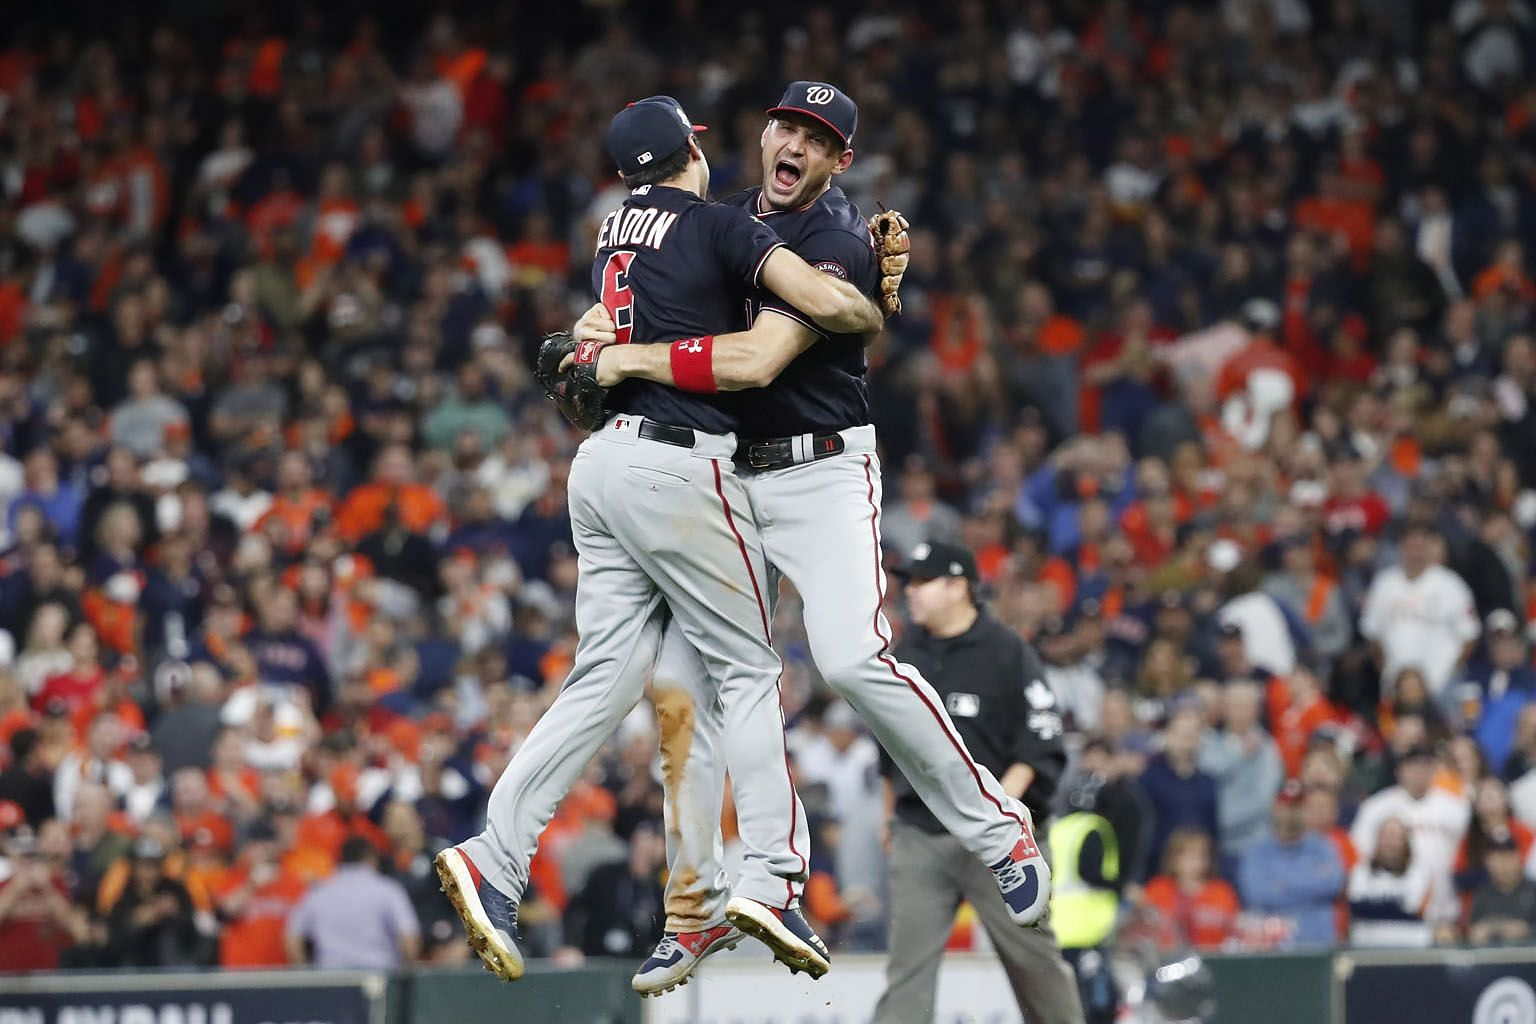 Washington Nationals players Anthony Rendon (left) and Ryan Zimmerman leaping in celebration after defeating the Houston Astros 6-2 in Game 7 of the MLB World Series in Houston, Texas. PHOTO: EPA-EFE